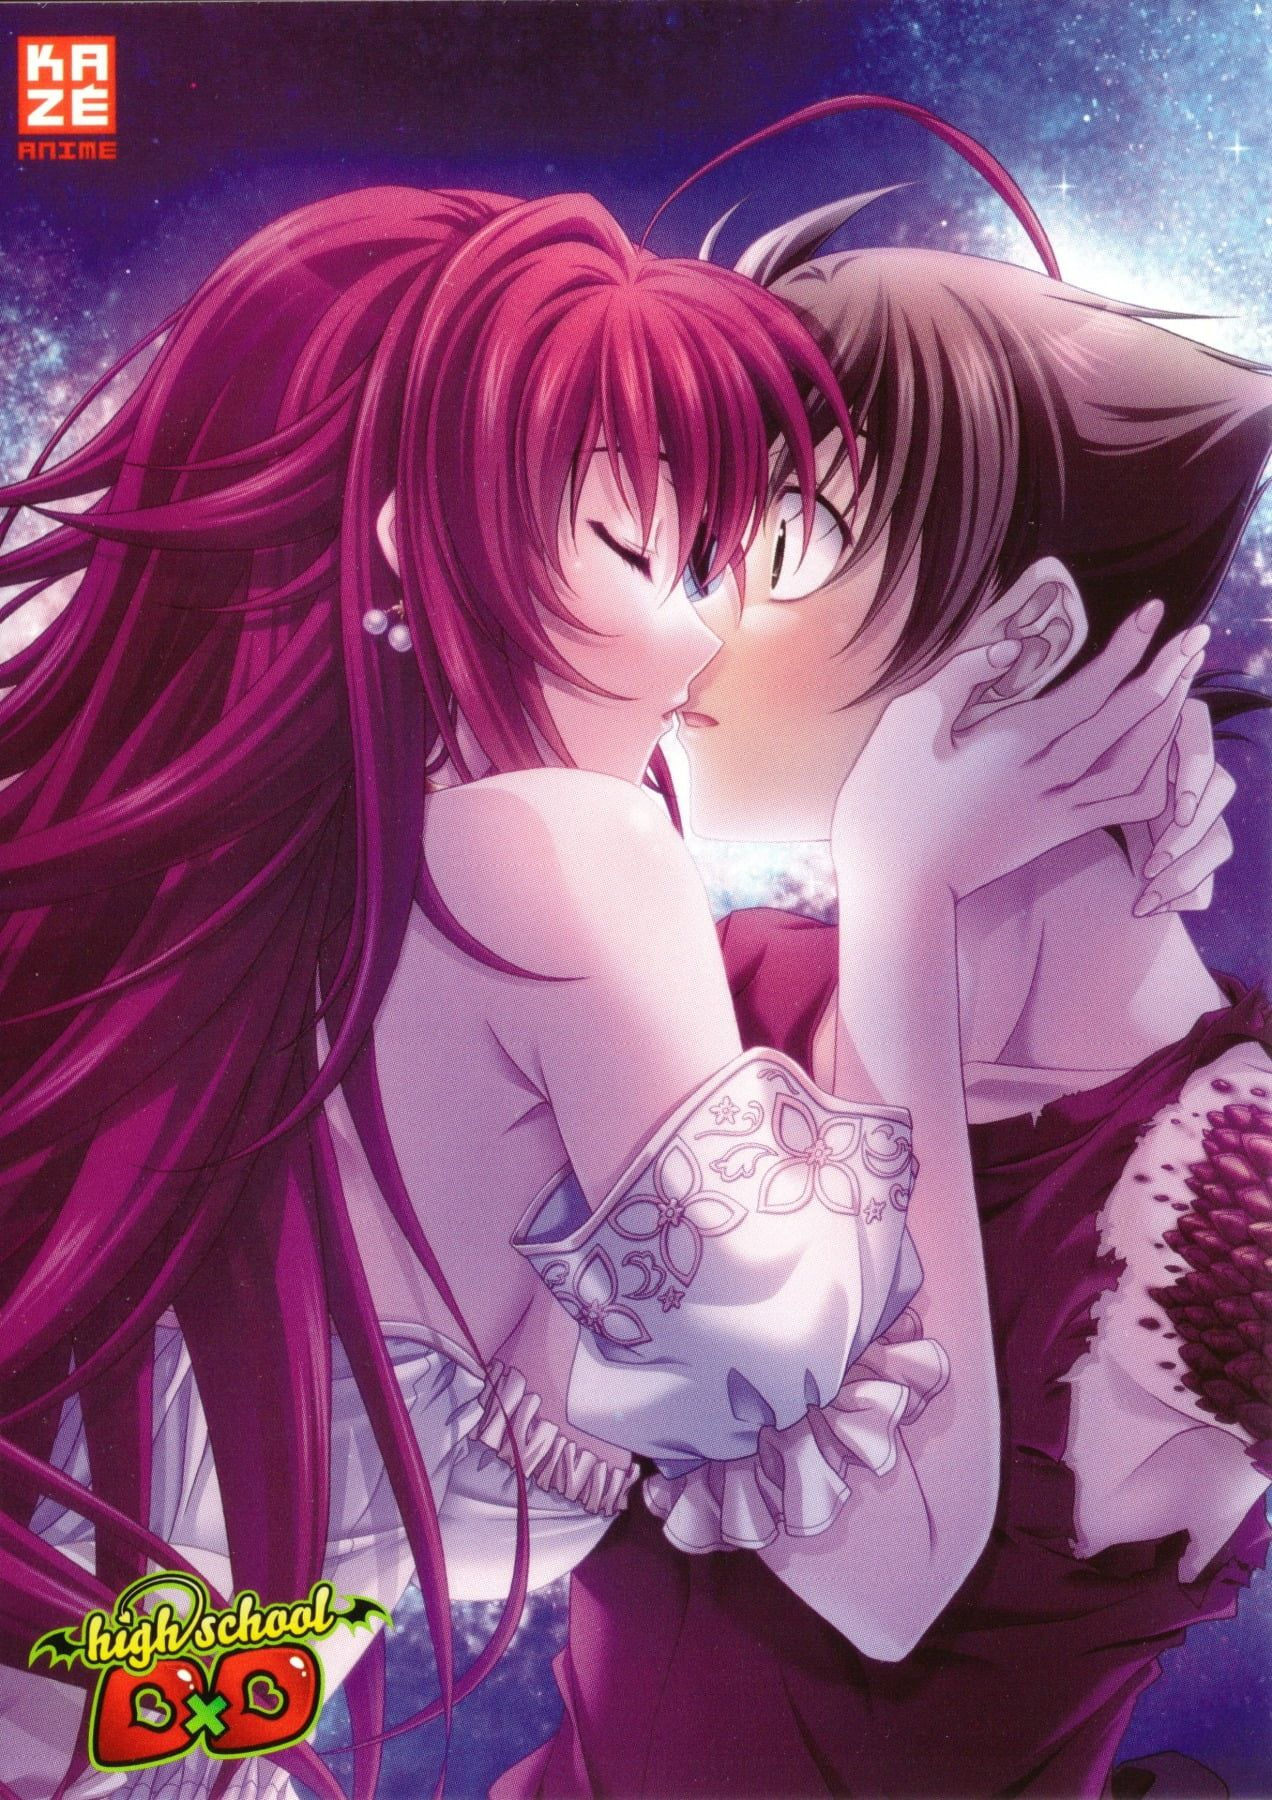 High School DXD Rias Gremory and Isei Hyoudou wallpaper Highschool DxD Gremory Rias Hyoudou Issei